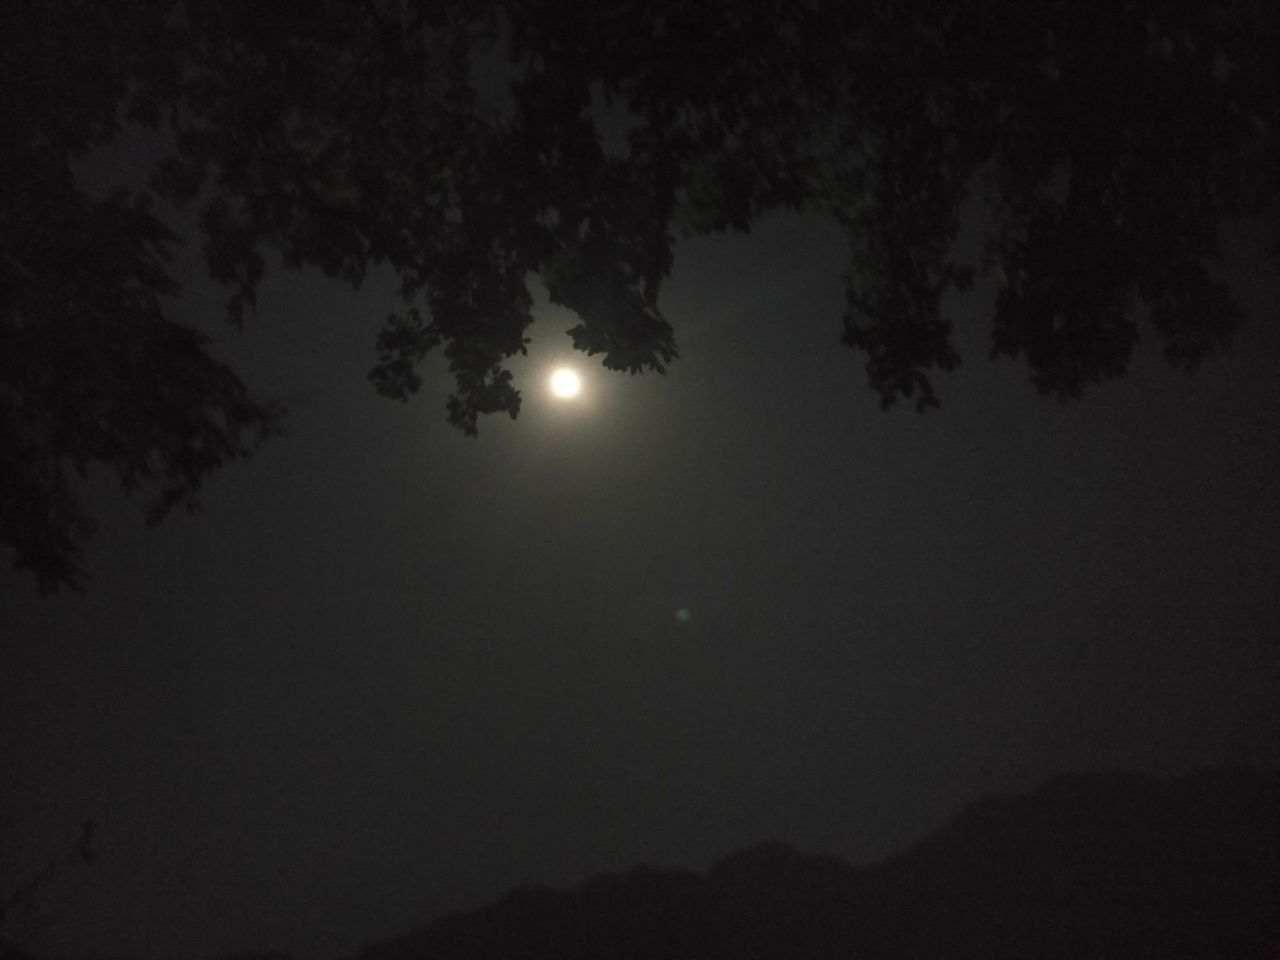 Moonlight Night Moon Nature Beauty In Nature Sky Outdoors Natural Phenomenon Supermoon 2016 EyeEm Nature Lover Oneplus2 No People Trees My Year My View